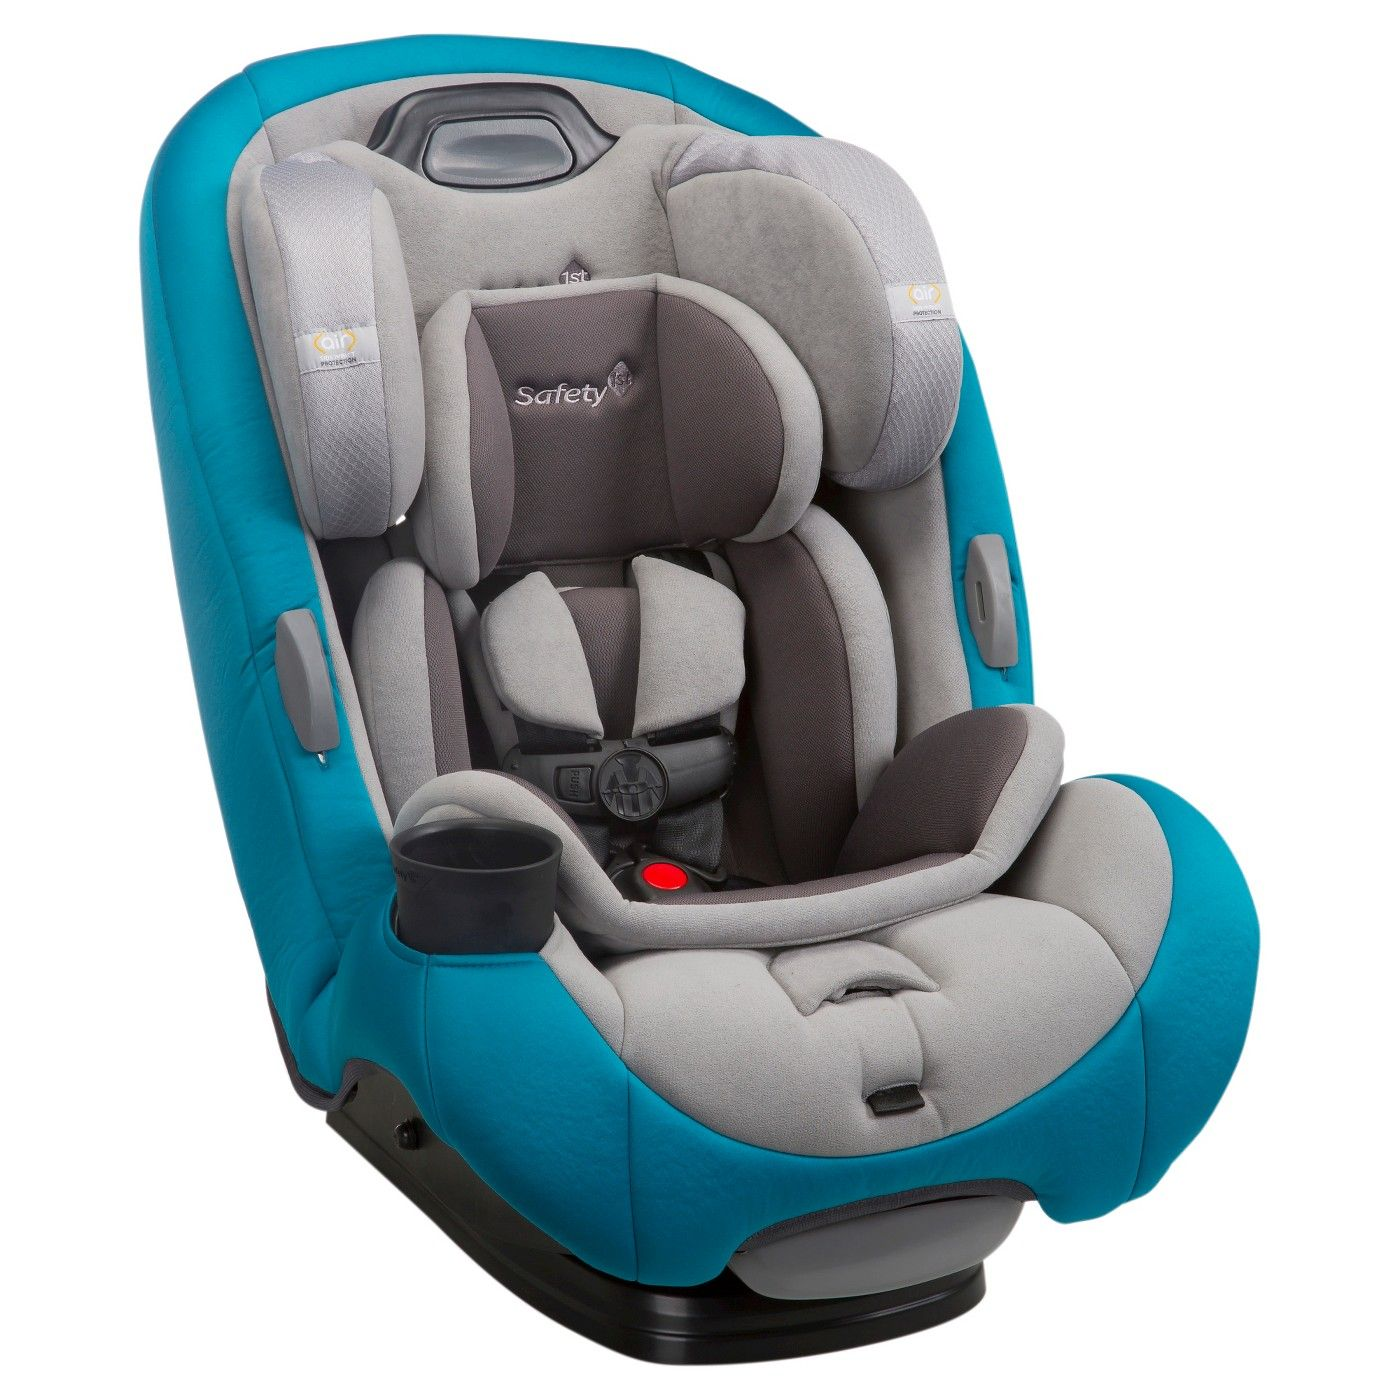 Safety 1st Grow in 2020 Car seats, Convertible car seat